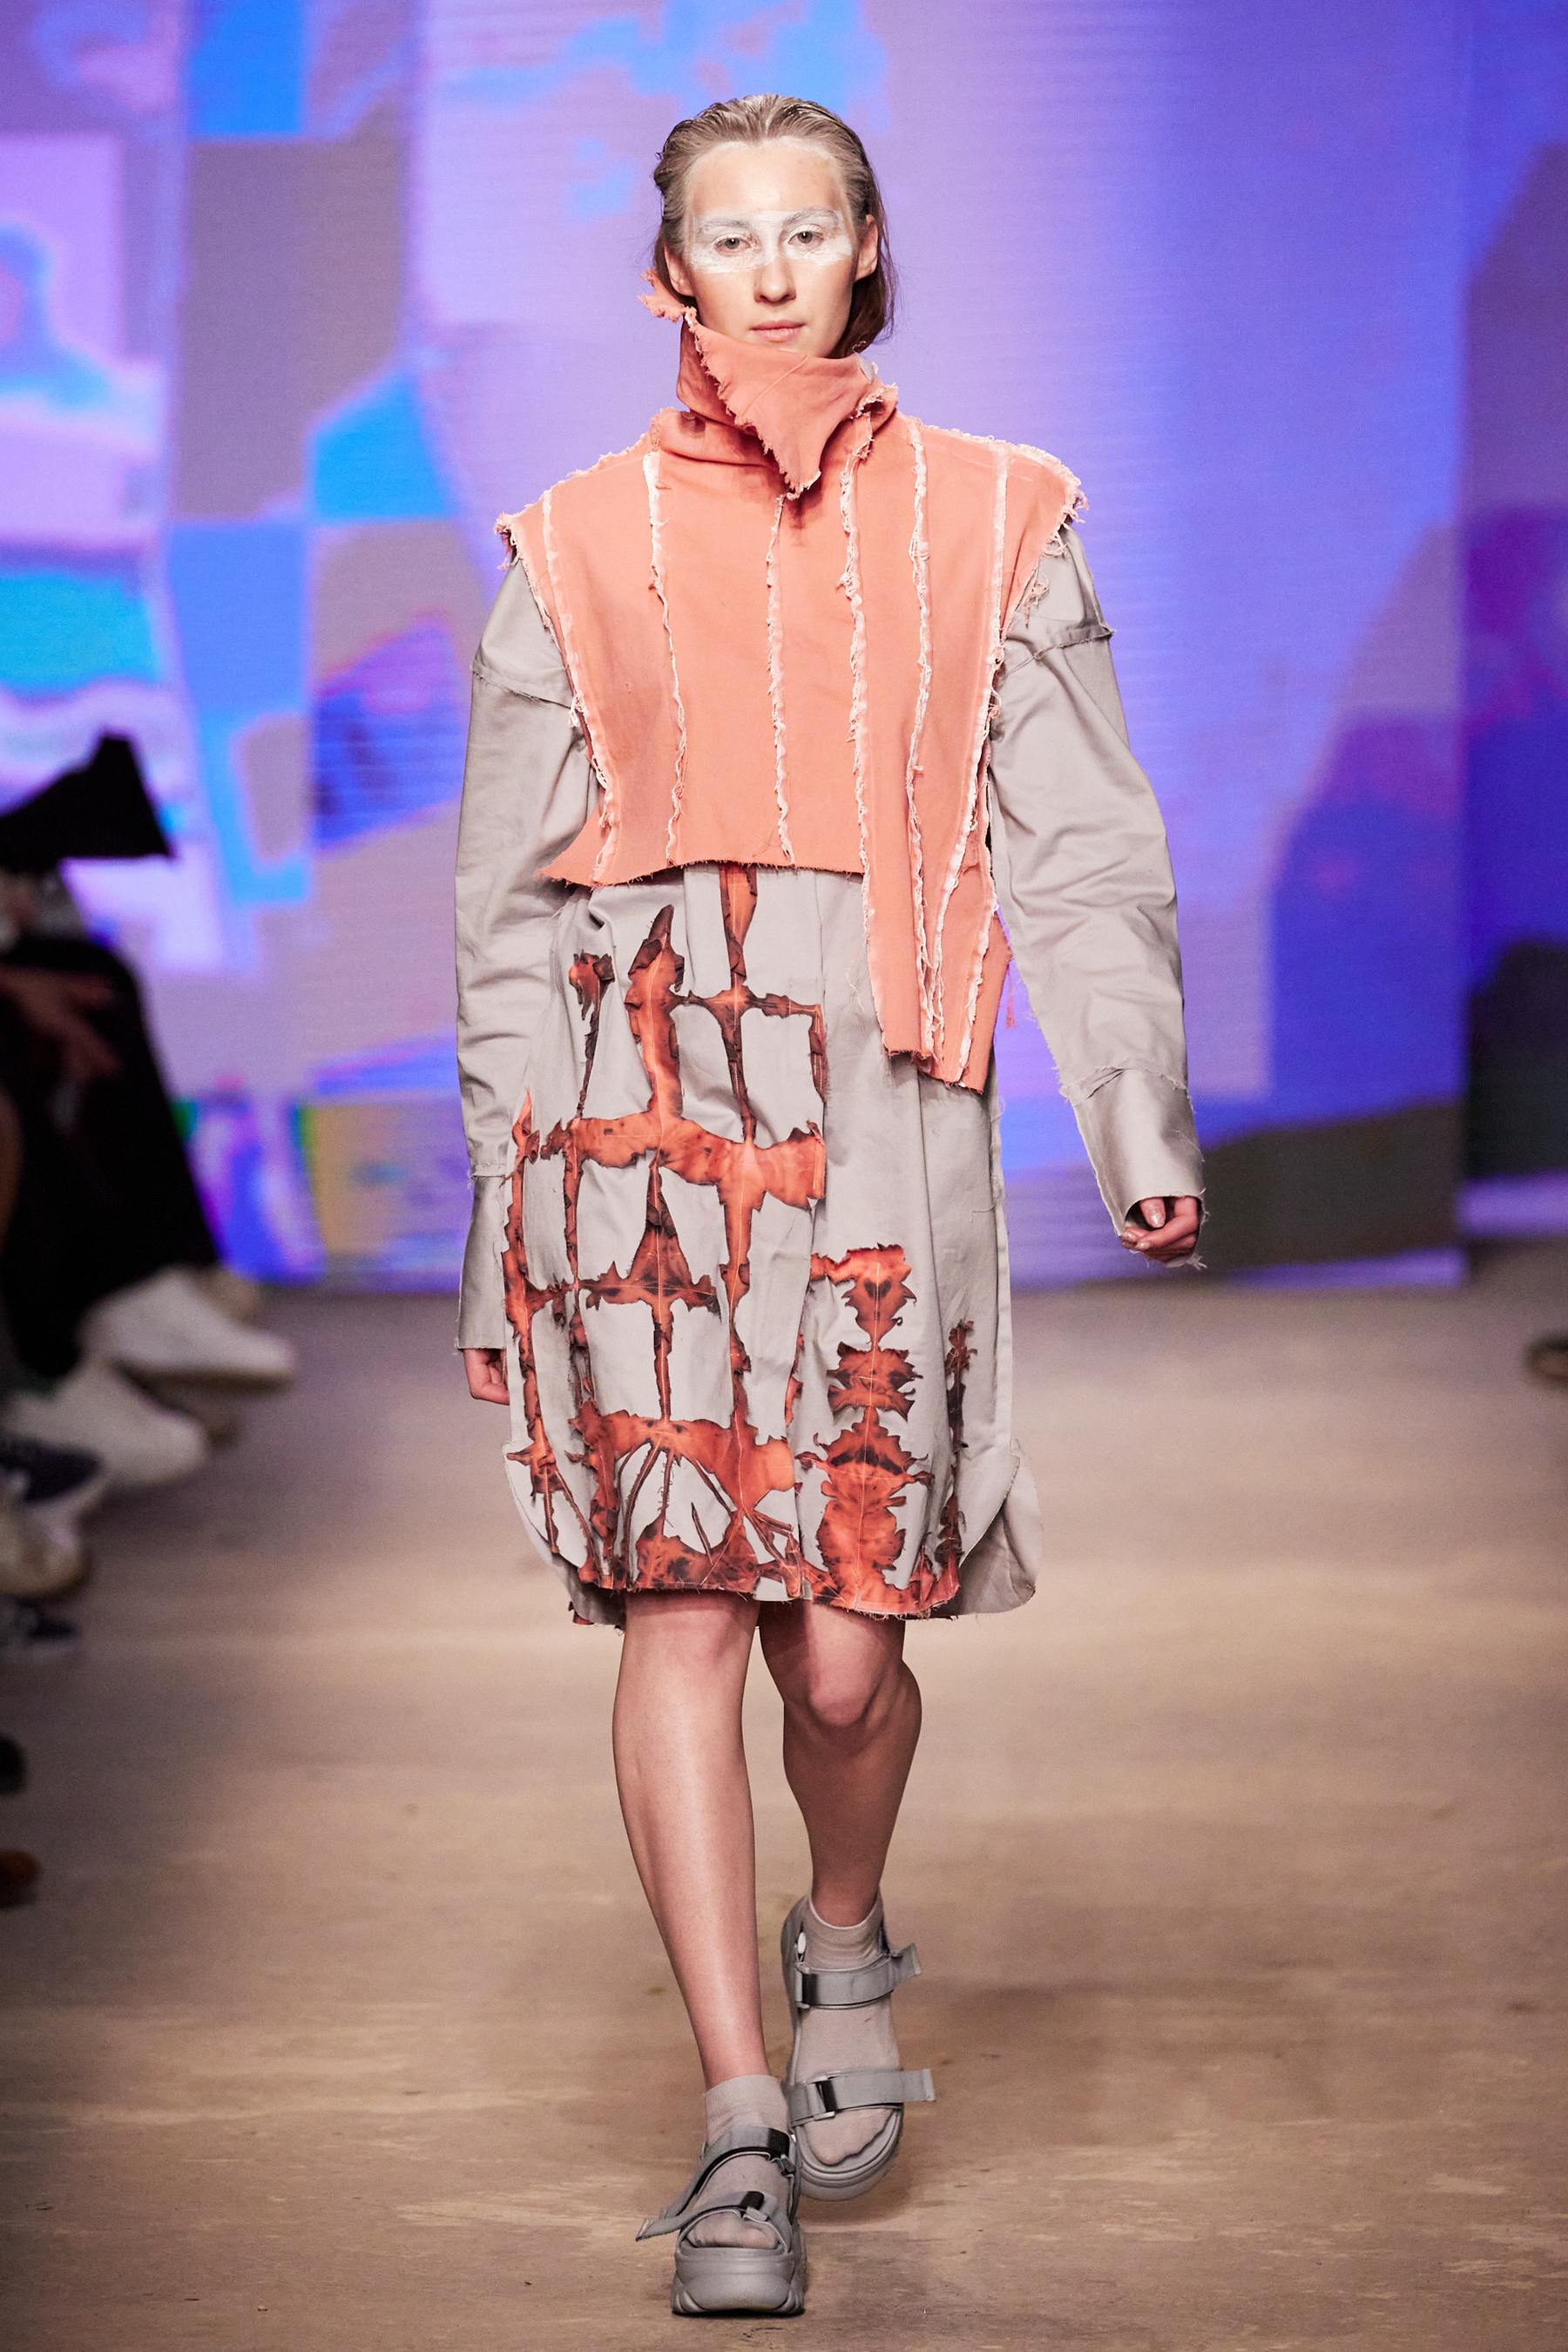 Institute Of Business And Design Fall 2021 Fashion Show